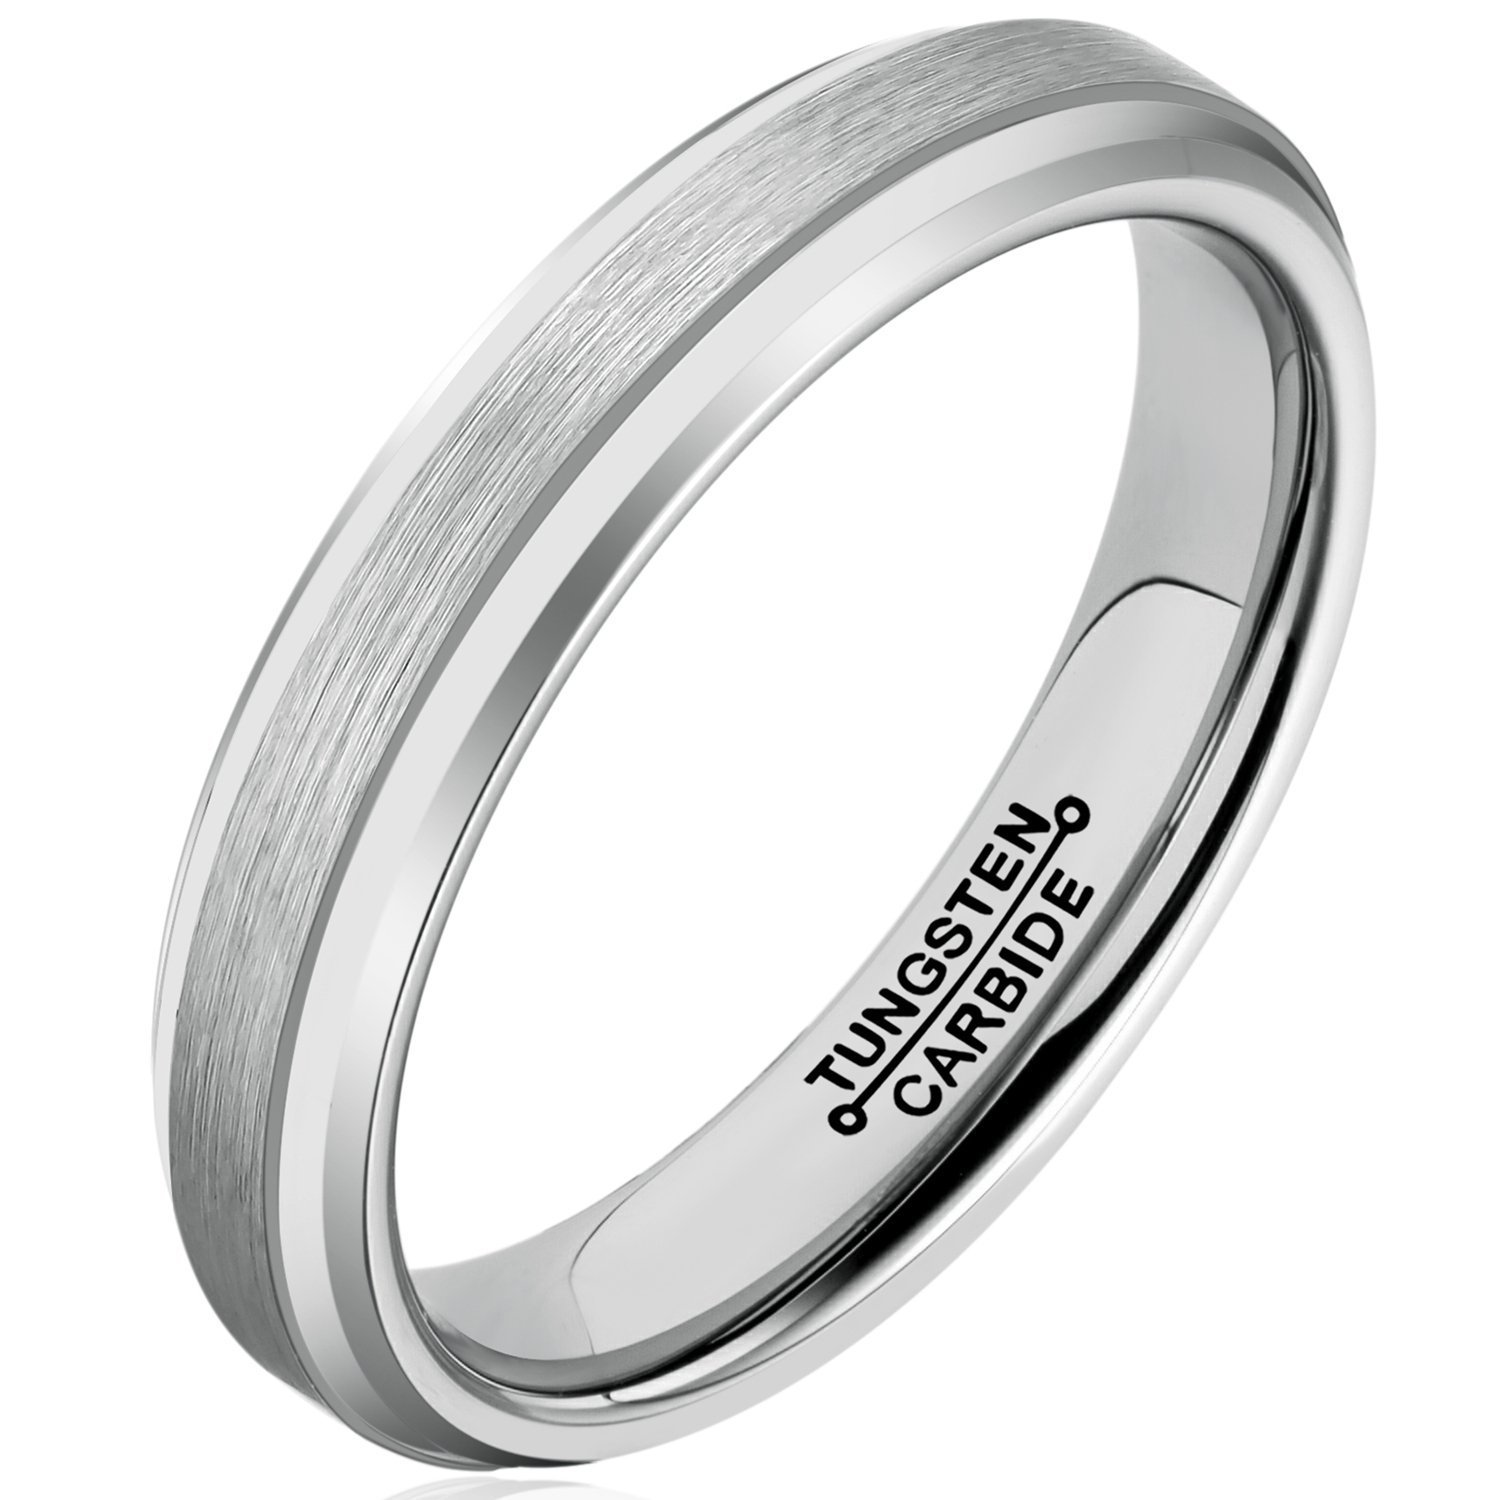 Primary image for 4mm Tungsten Ring Wedding Band Comfort Fit Matte Finish; 4-16 & Half